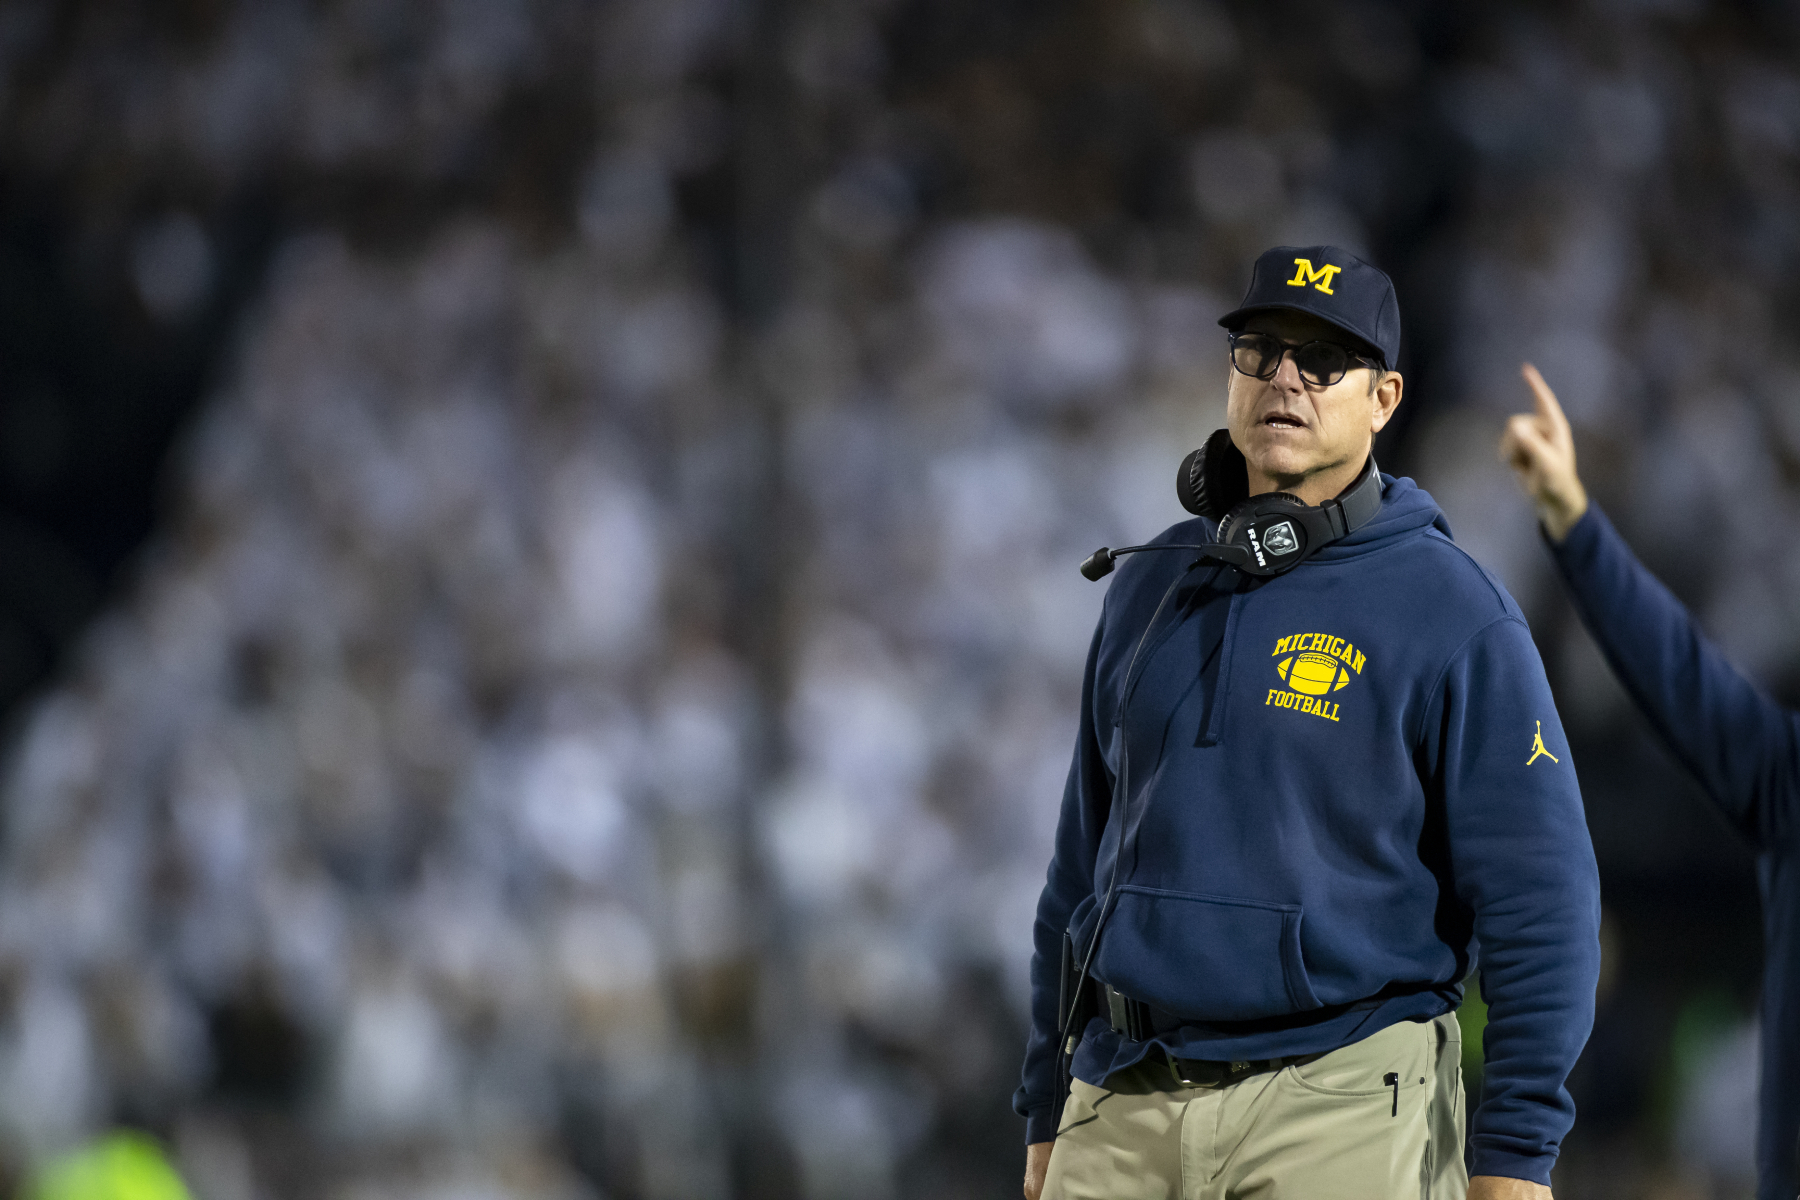 Jim Harbaugh is getting a 10% salary cut at Michigan starting on Aug. 1. The amount he is losing might not be as much as you think.